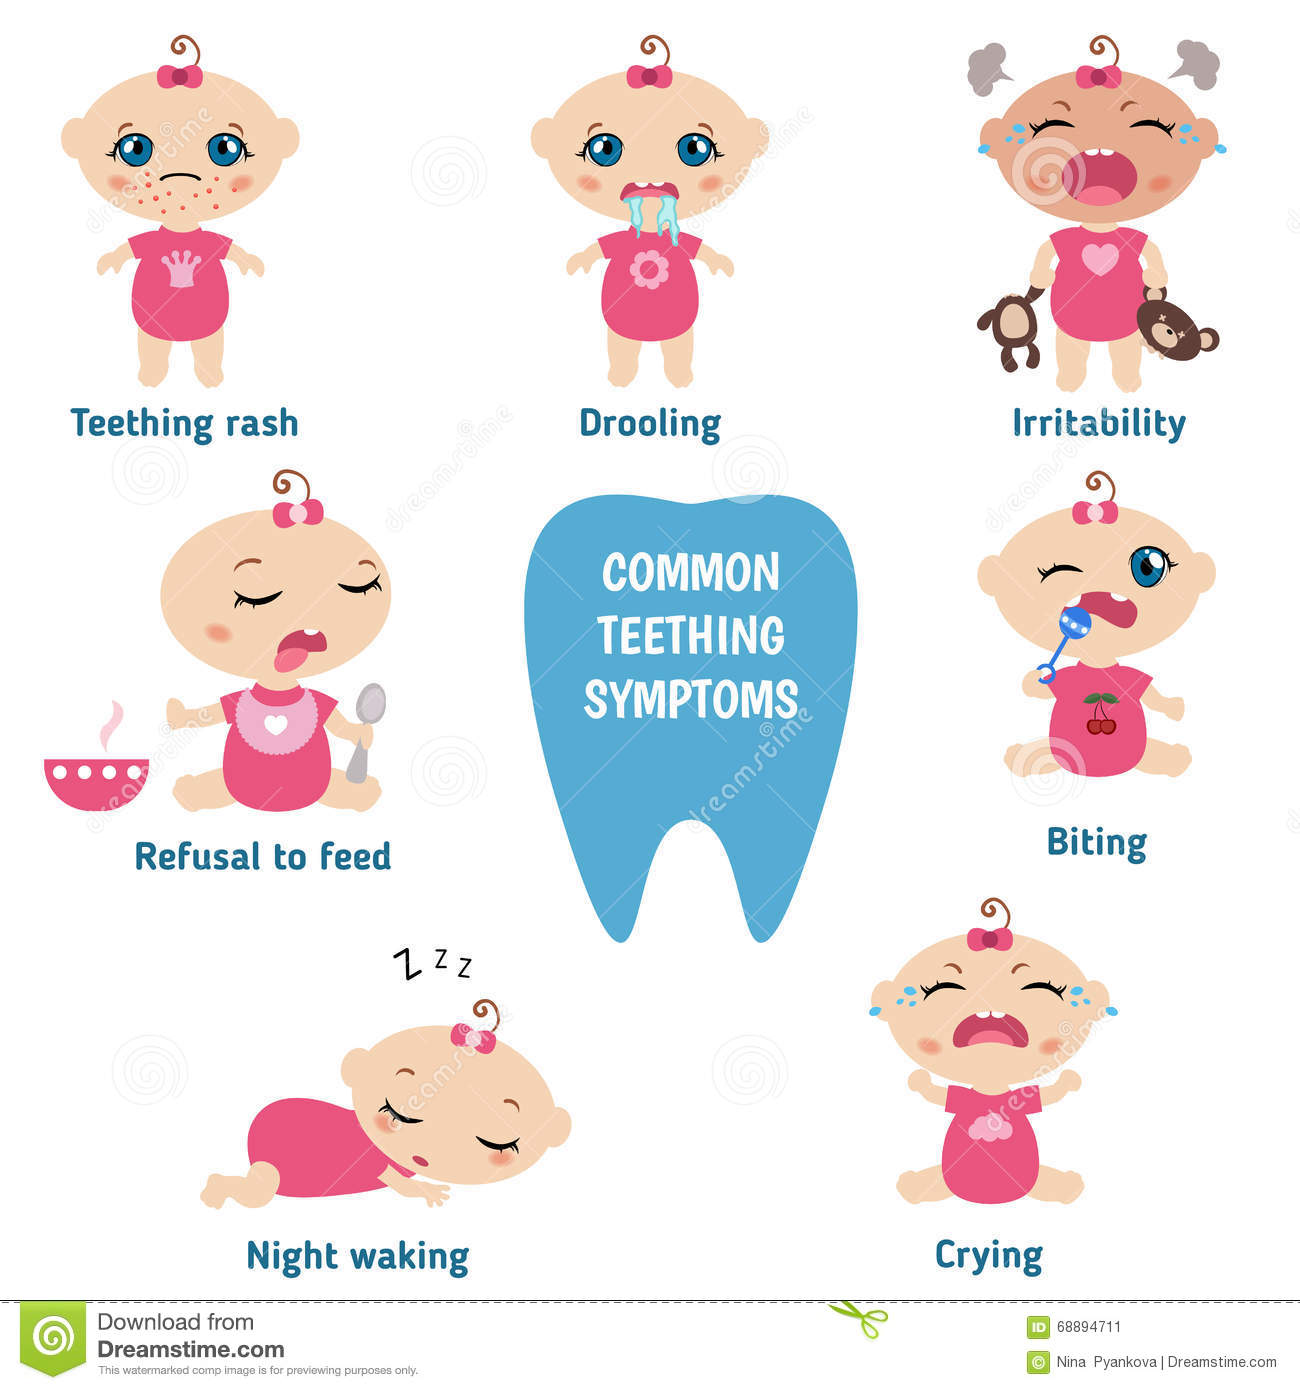 baby teething symptoms cartoon vector cartoondealer com baby girl crying clipart baby crying clip art images